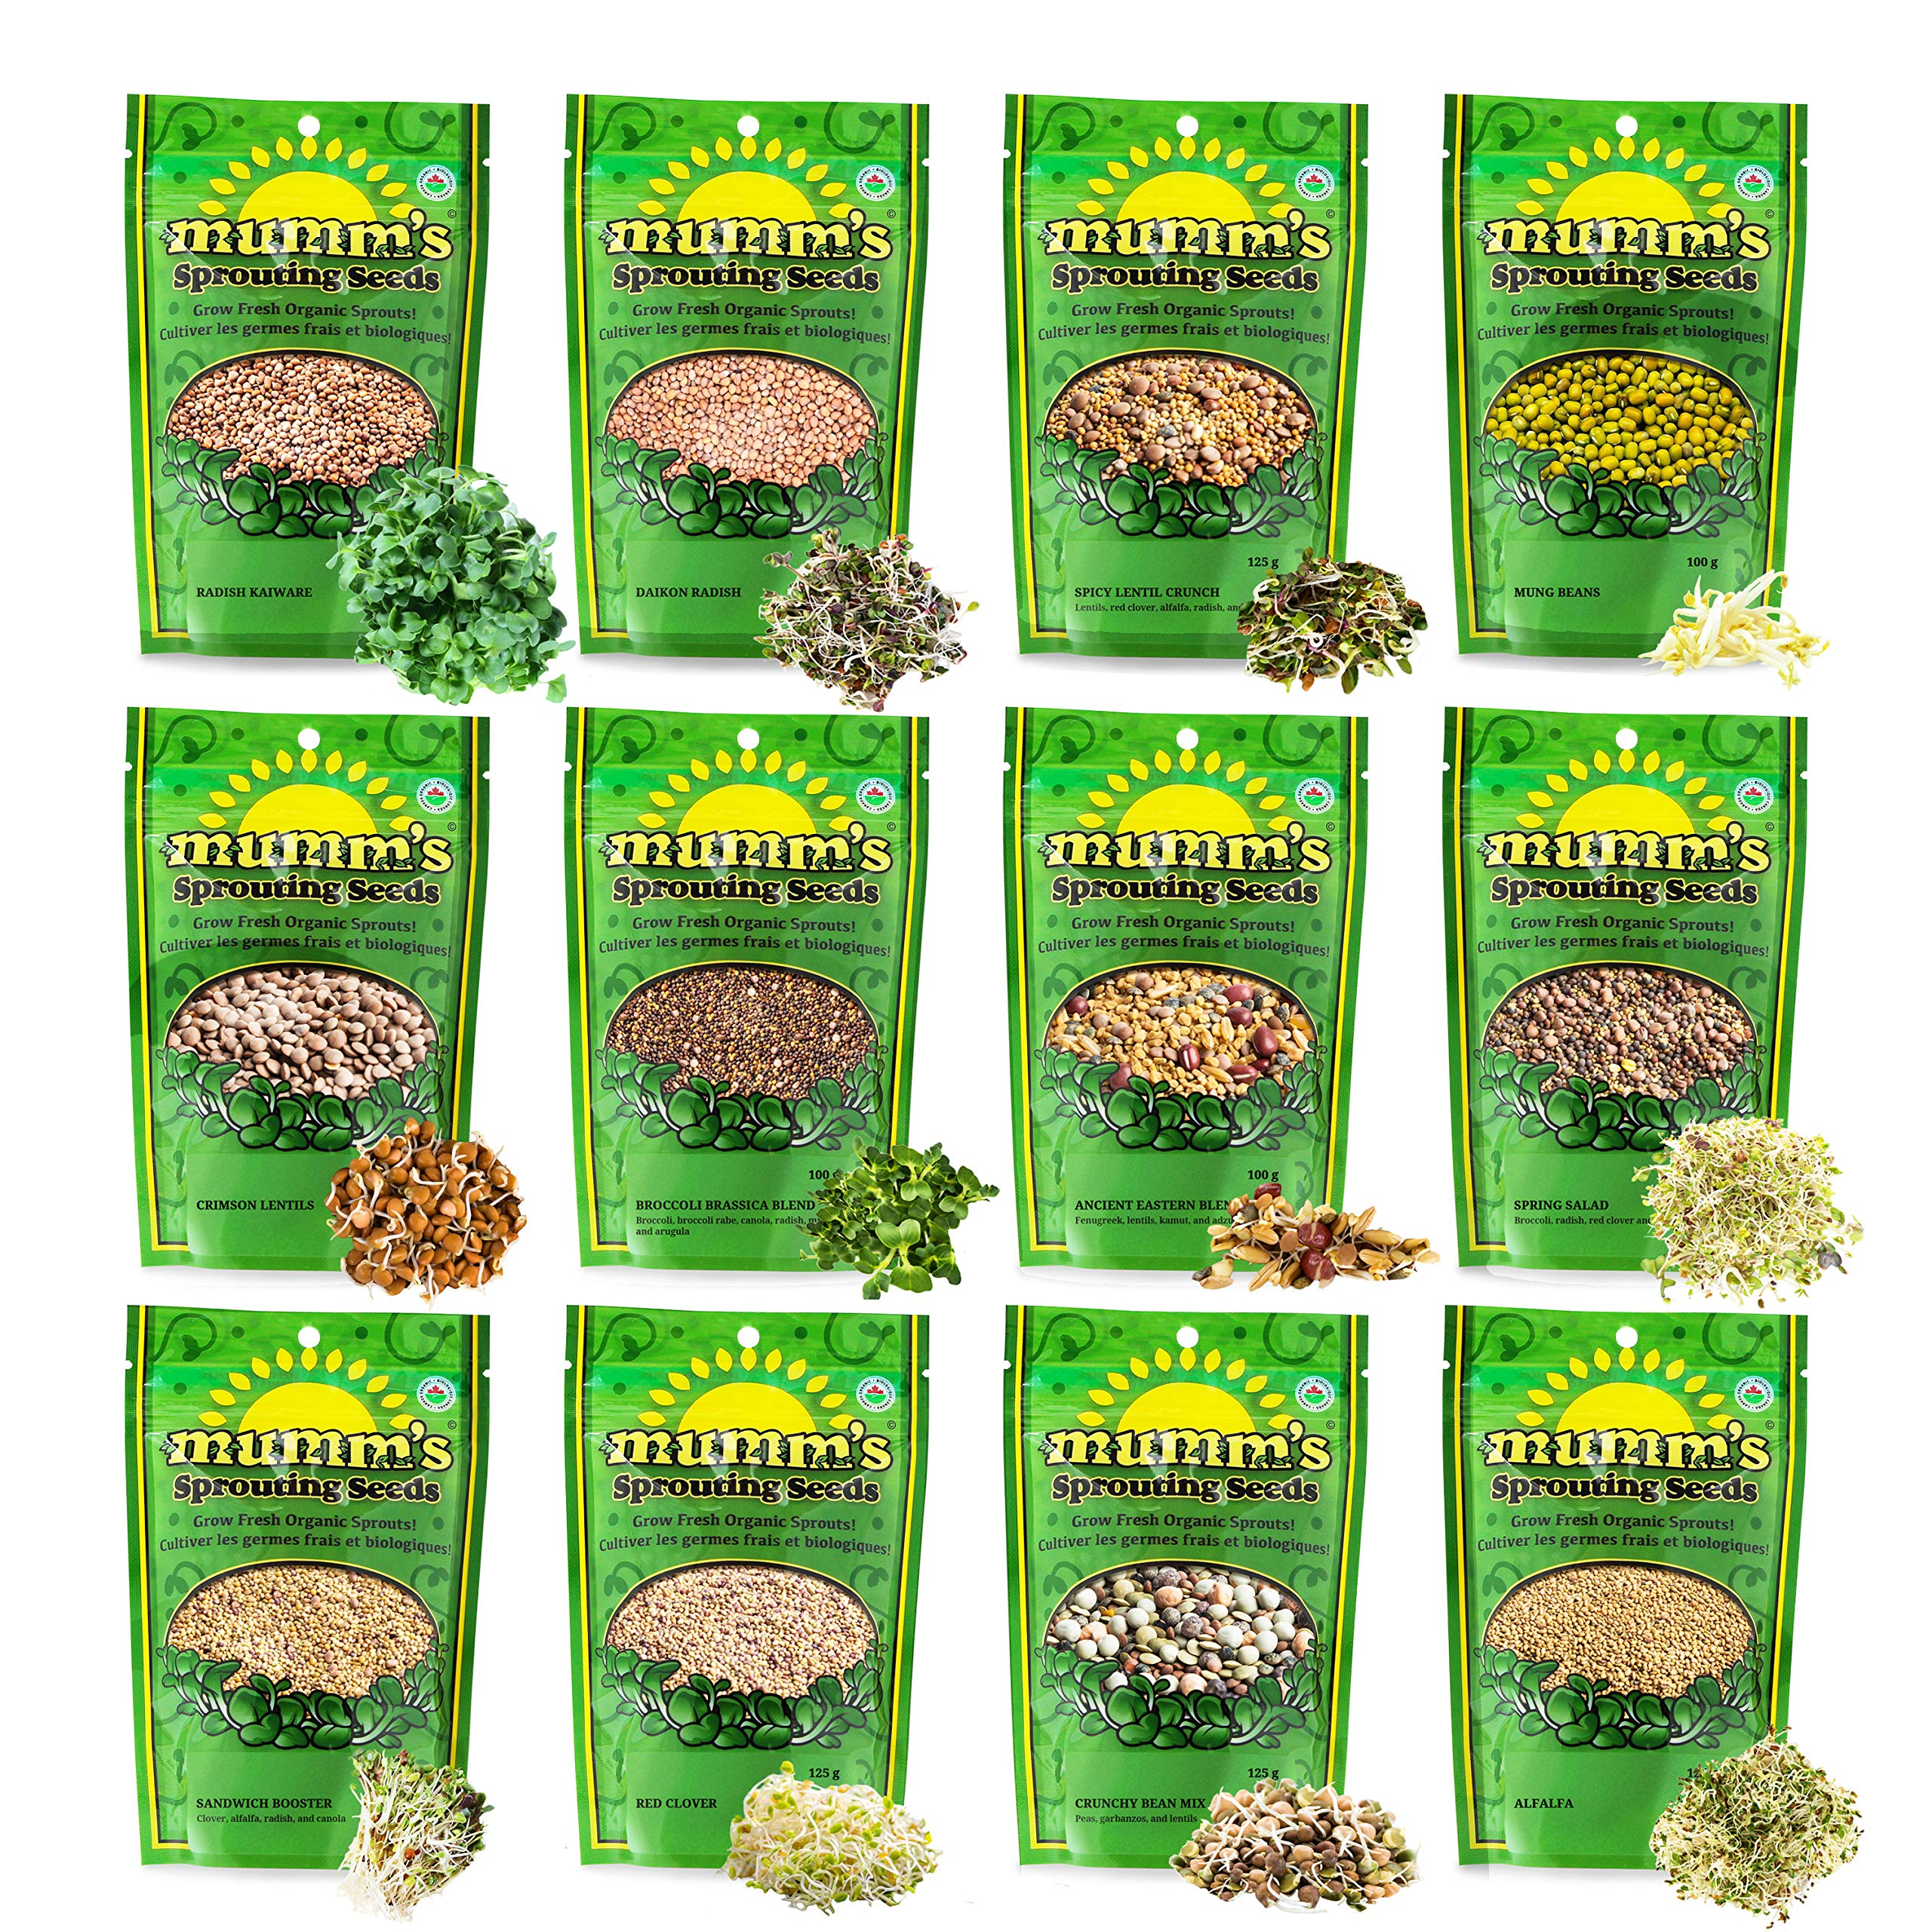 Mumm's Sprouting Seeds - Boosted Sample Pack - 1,325 GR - Organic Sprout Seed Kit - Broccoli, Radish, Alfalfa, Mung Bean by Masontops